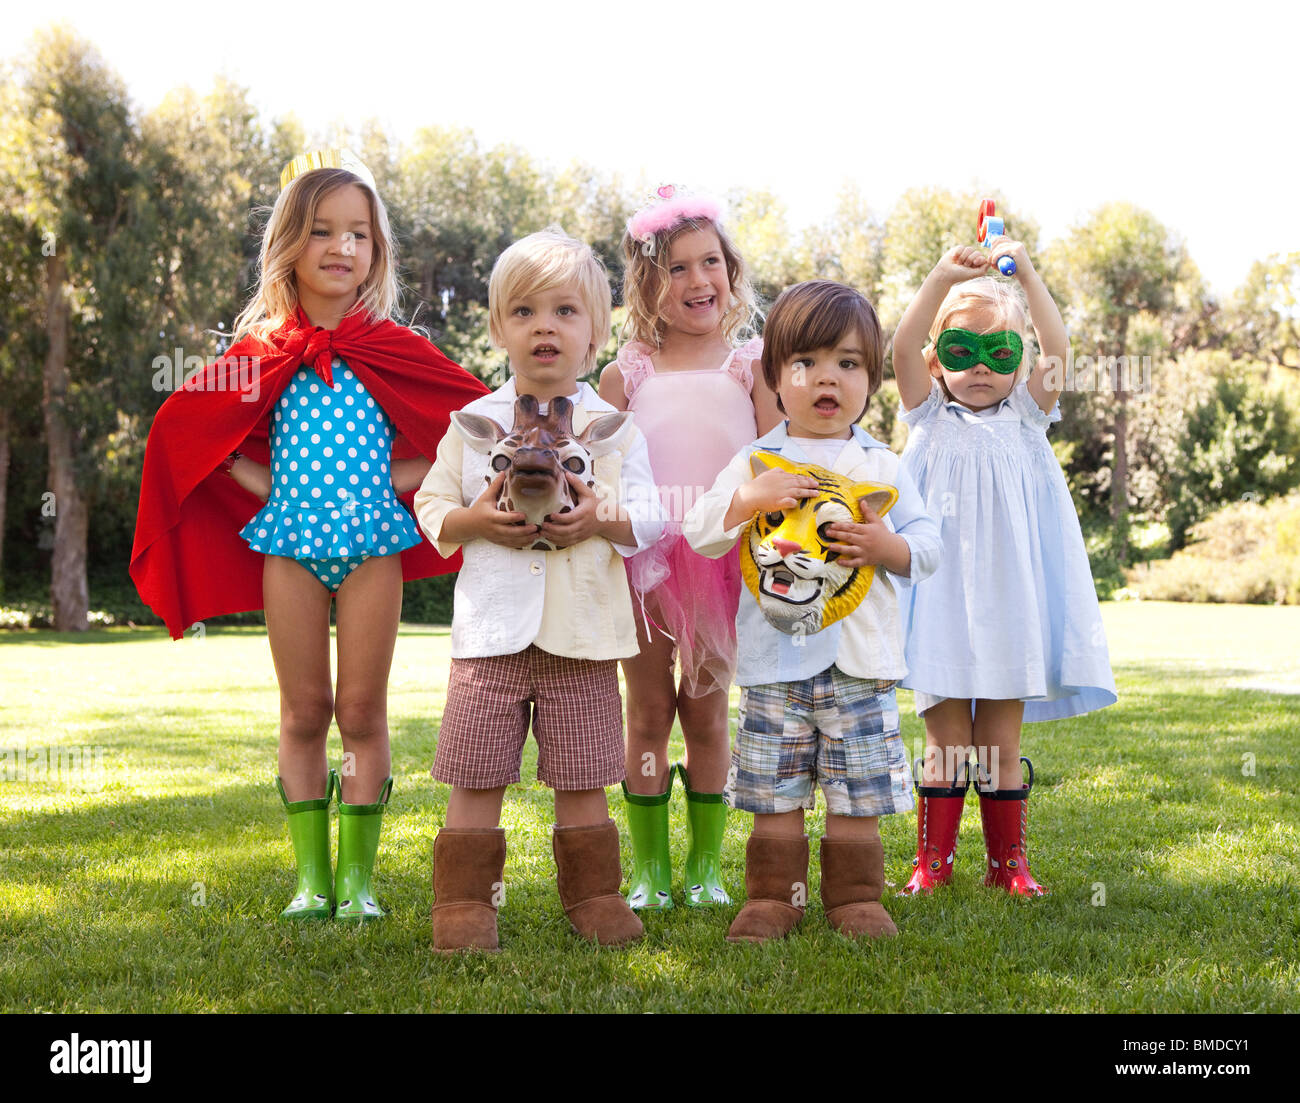 Dress Up Pretend Play Images On: Group Of Kids Playing Dress Up Stock Photo, Royalty Free